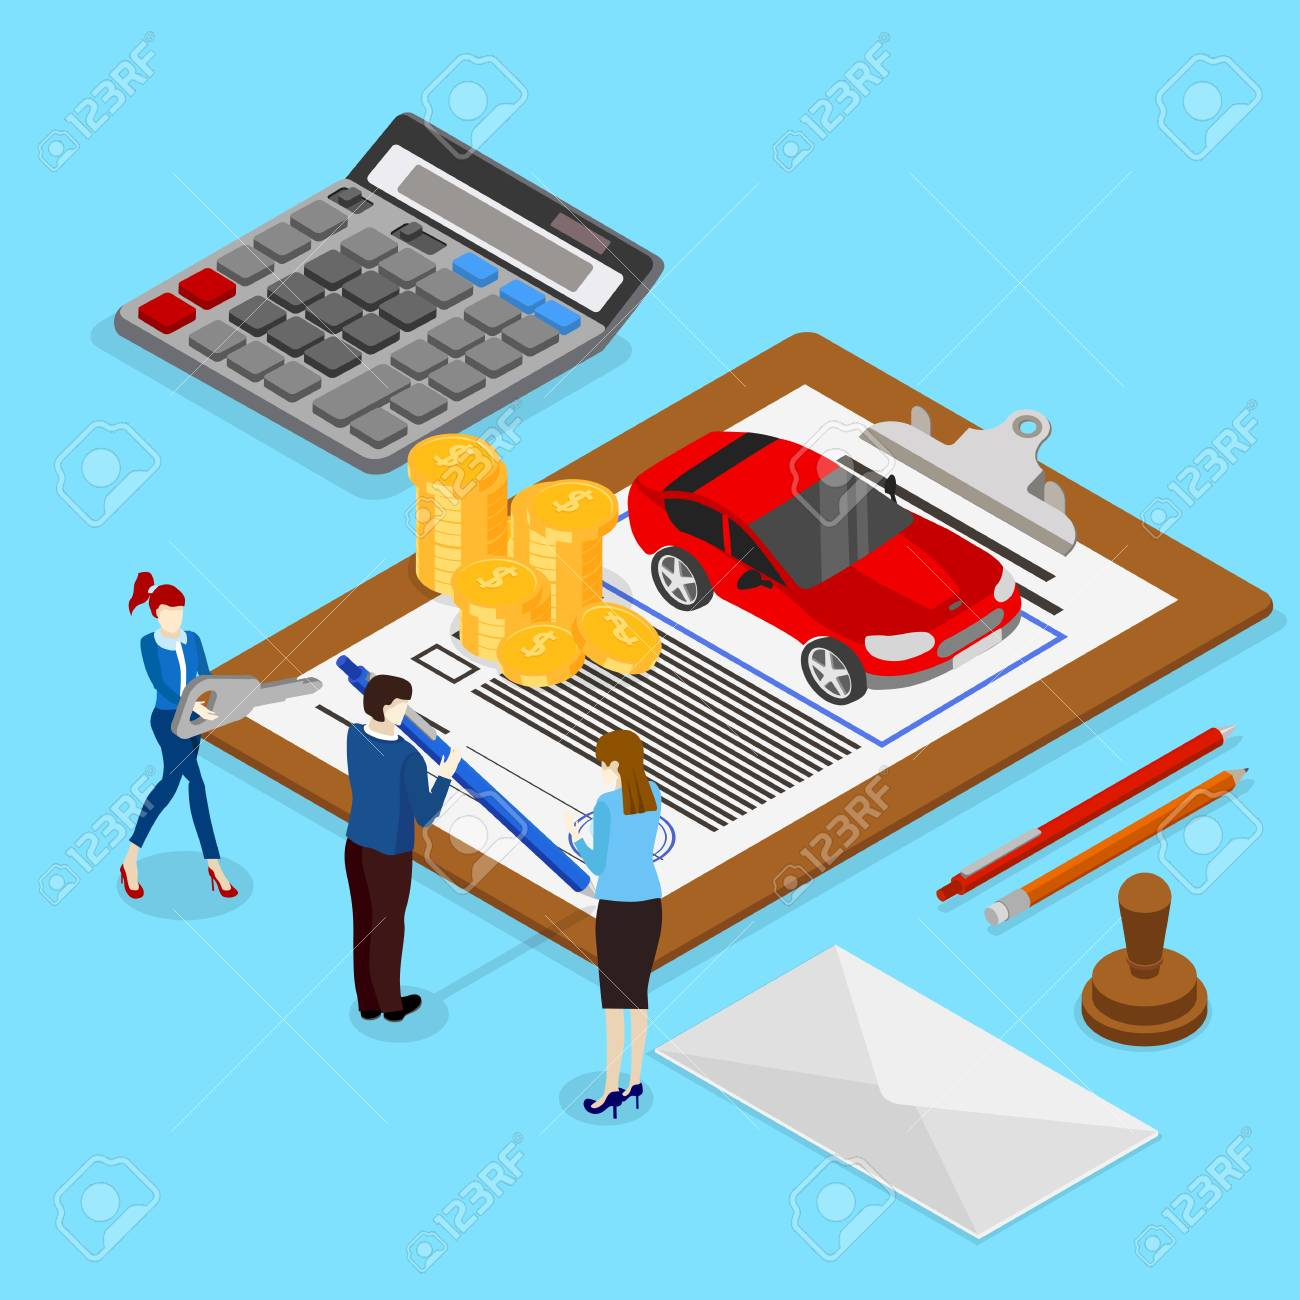 Car valuation and insurance. Isometric illustration with people and car on blue background. Vector 3d design. - 103899646